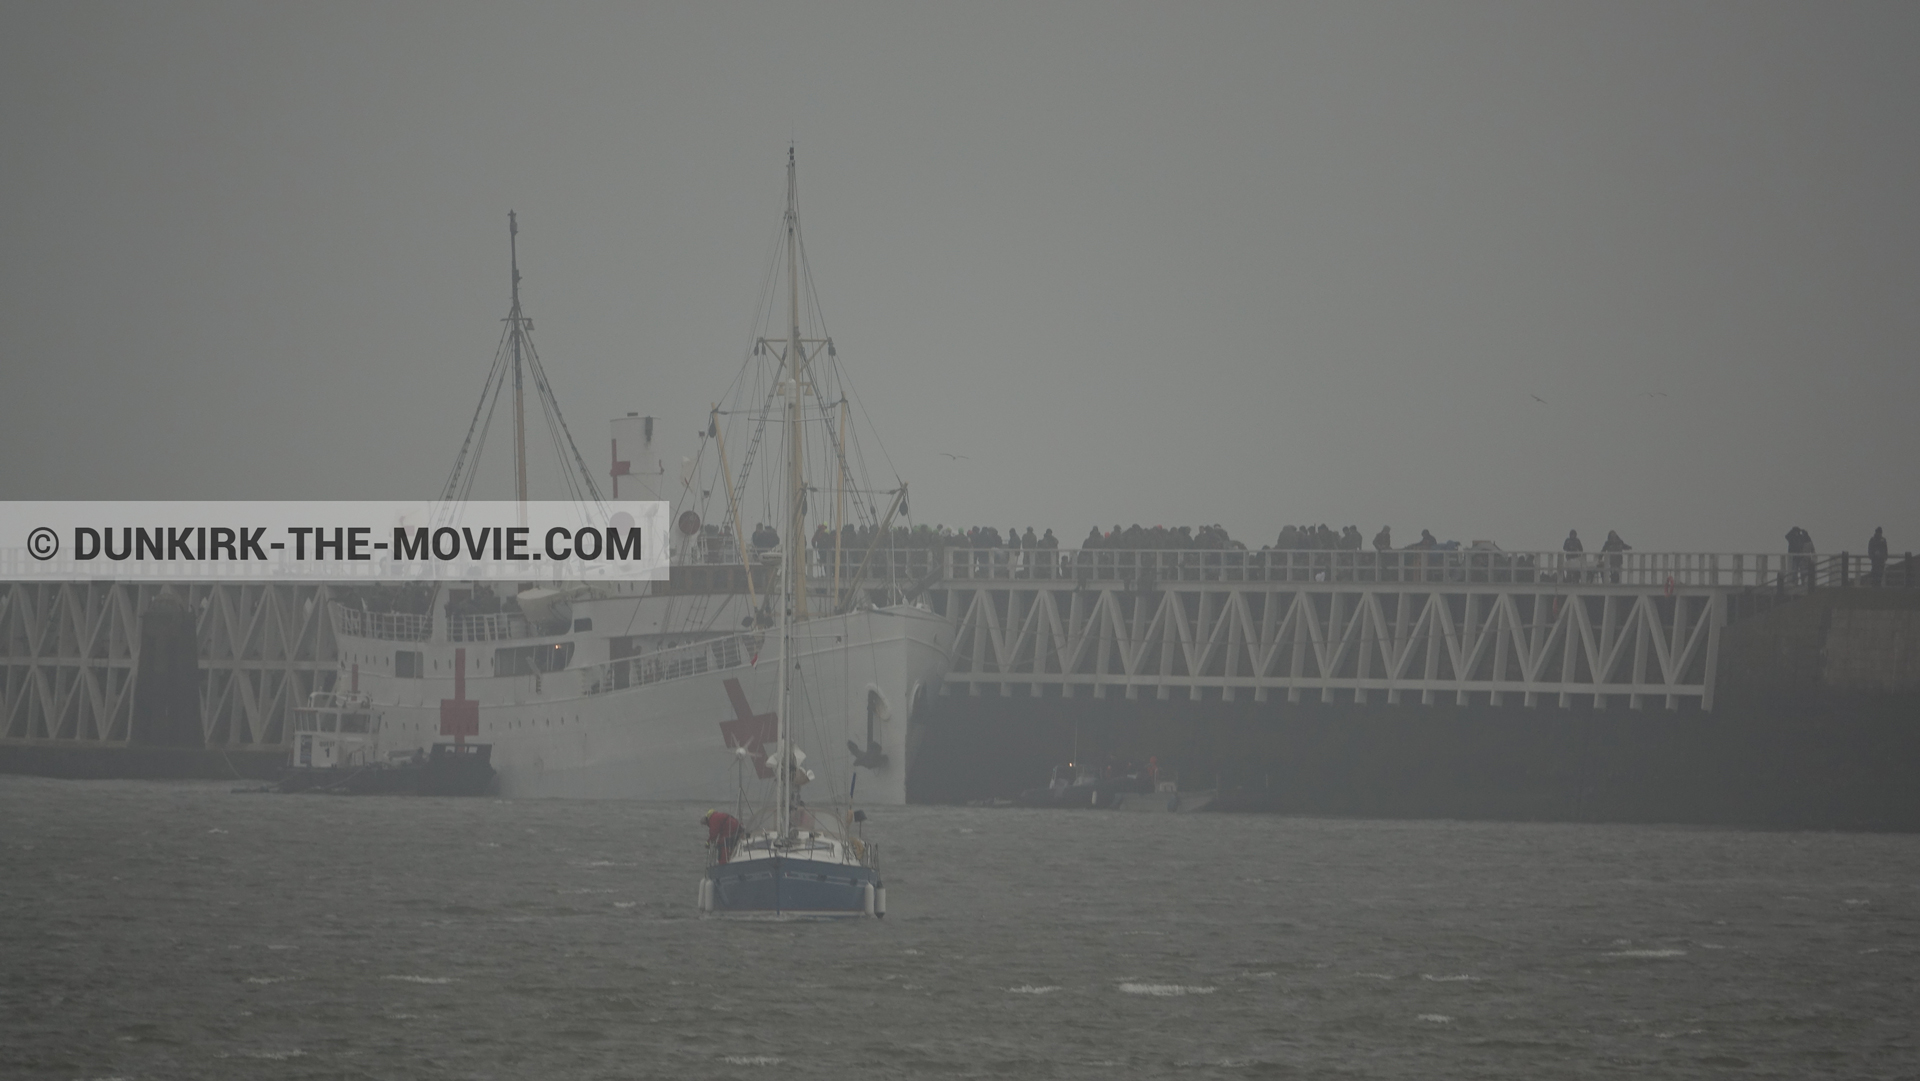 Picture with boat, grey sky, EST pier, M/S Rogaland,  from behind the scene of the Dunkirk movie by Nolan